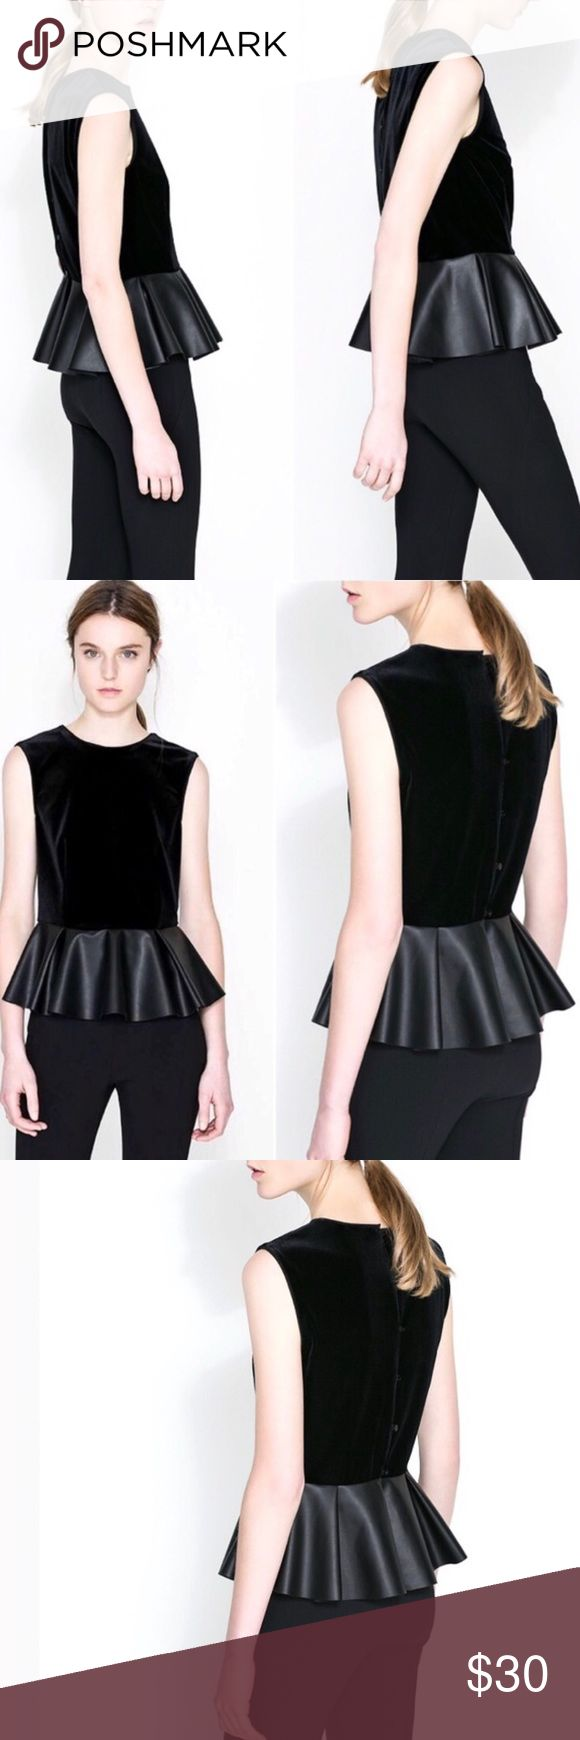 ZARA Velvet and Leather Peplum Top Velvet top with faux leather peplum; buttons down back Zara Tops